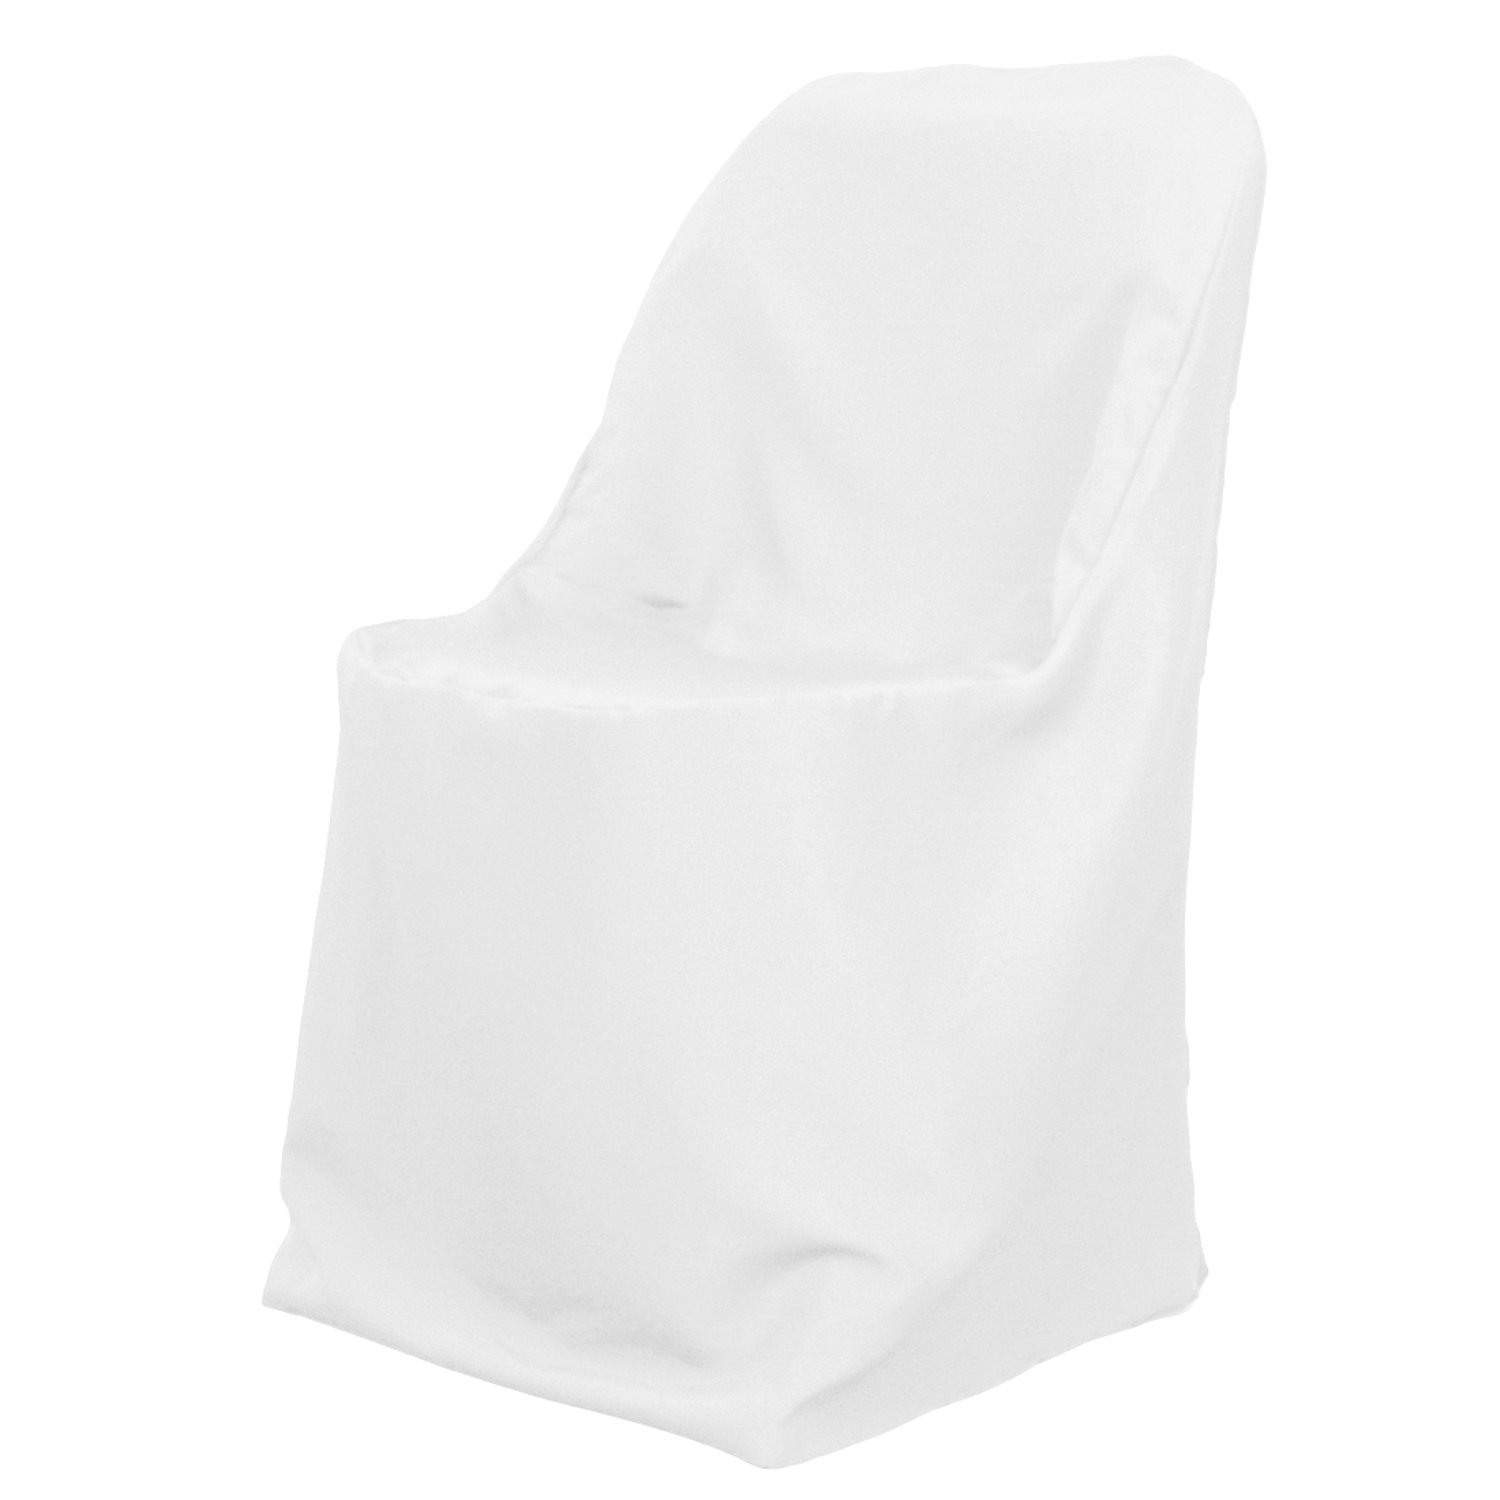 Incredible Craft And Party Premium Polyester Chair Cover For Wedding Or Party Use White Set Of 100 Banquet Chair Cover Inzonedesignstudio Interior Chair Design Inzonedesignstudiocom